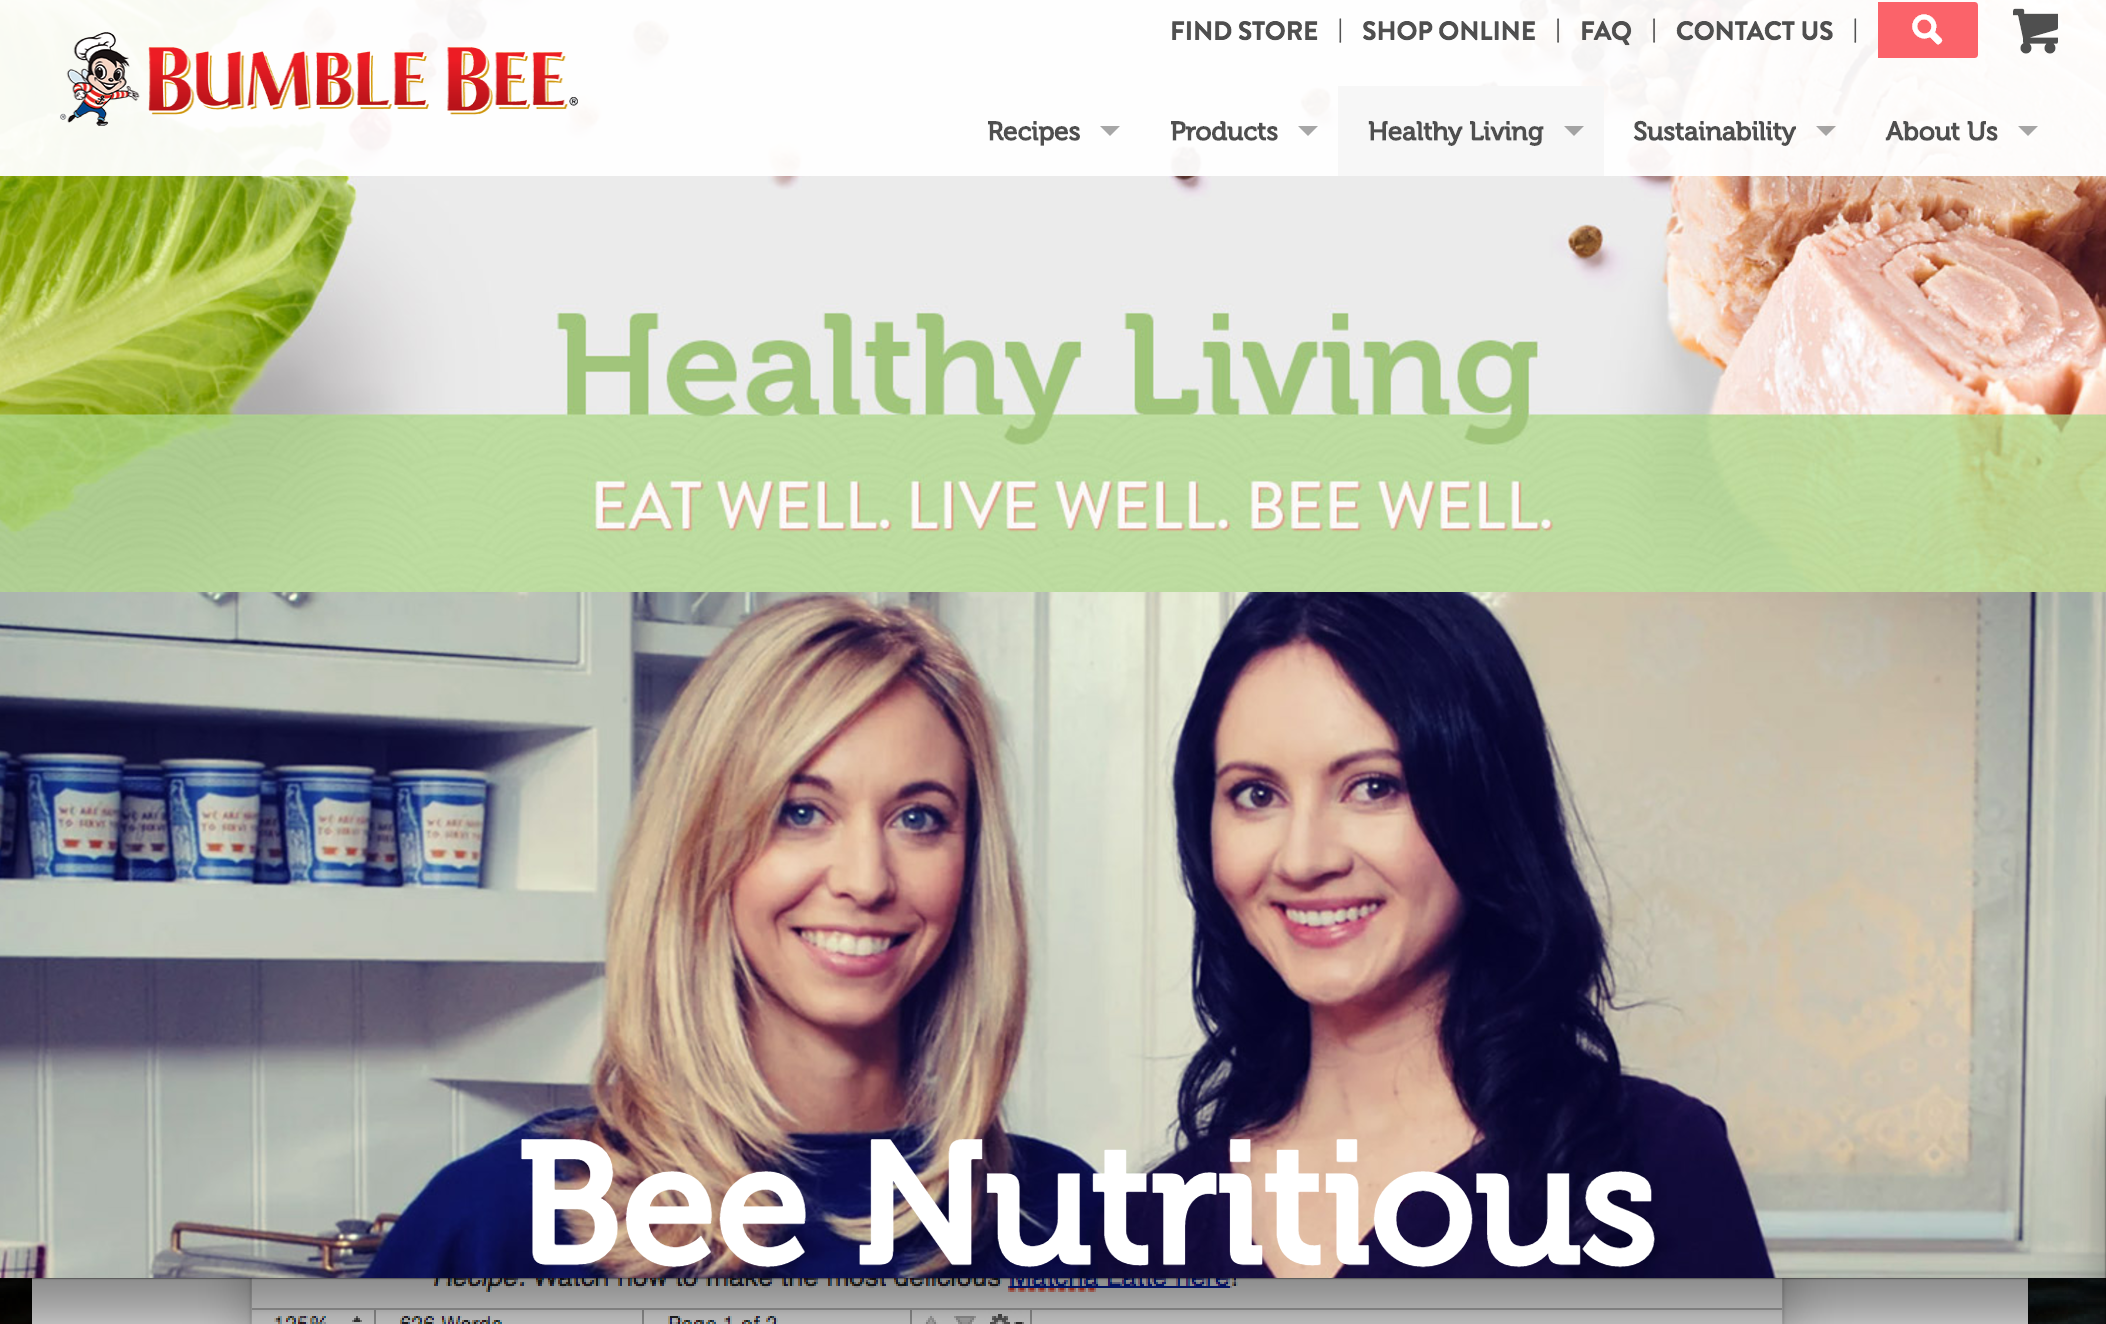 Bumble Bee healthy living page